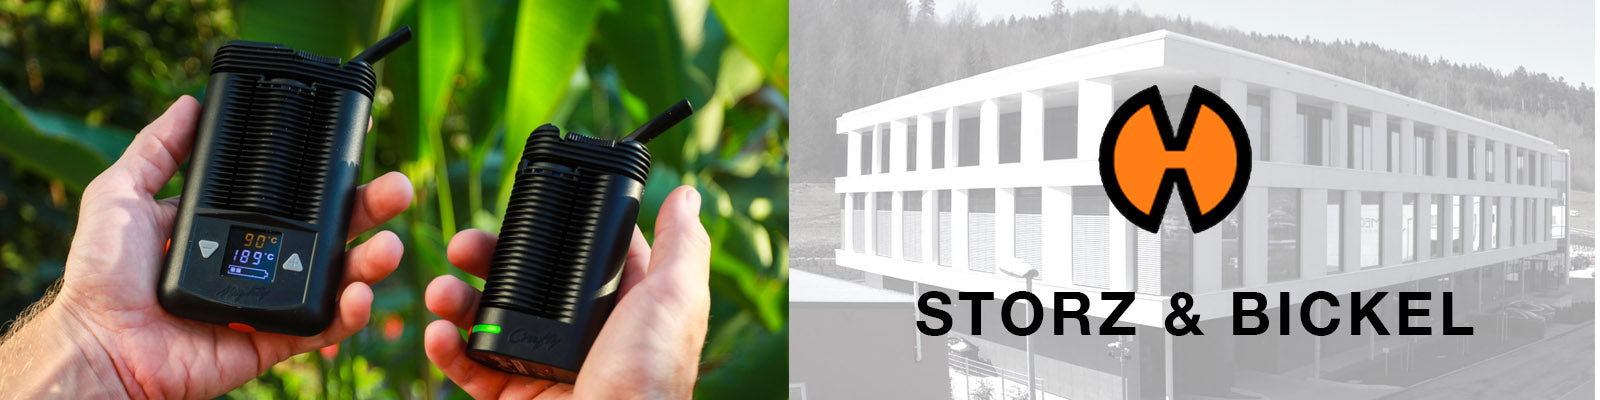 Storz & Bickel Vaporizers USA Authorized Sellers Free Shipping